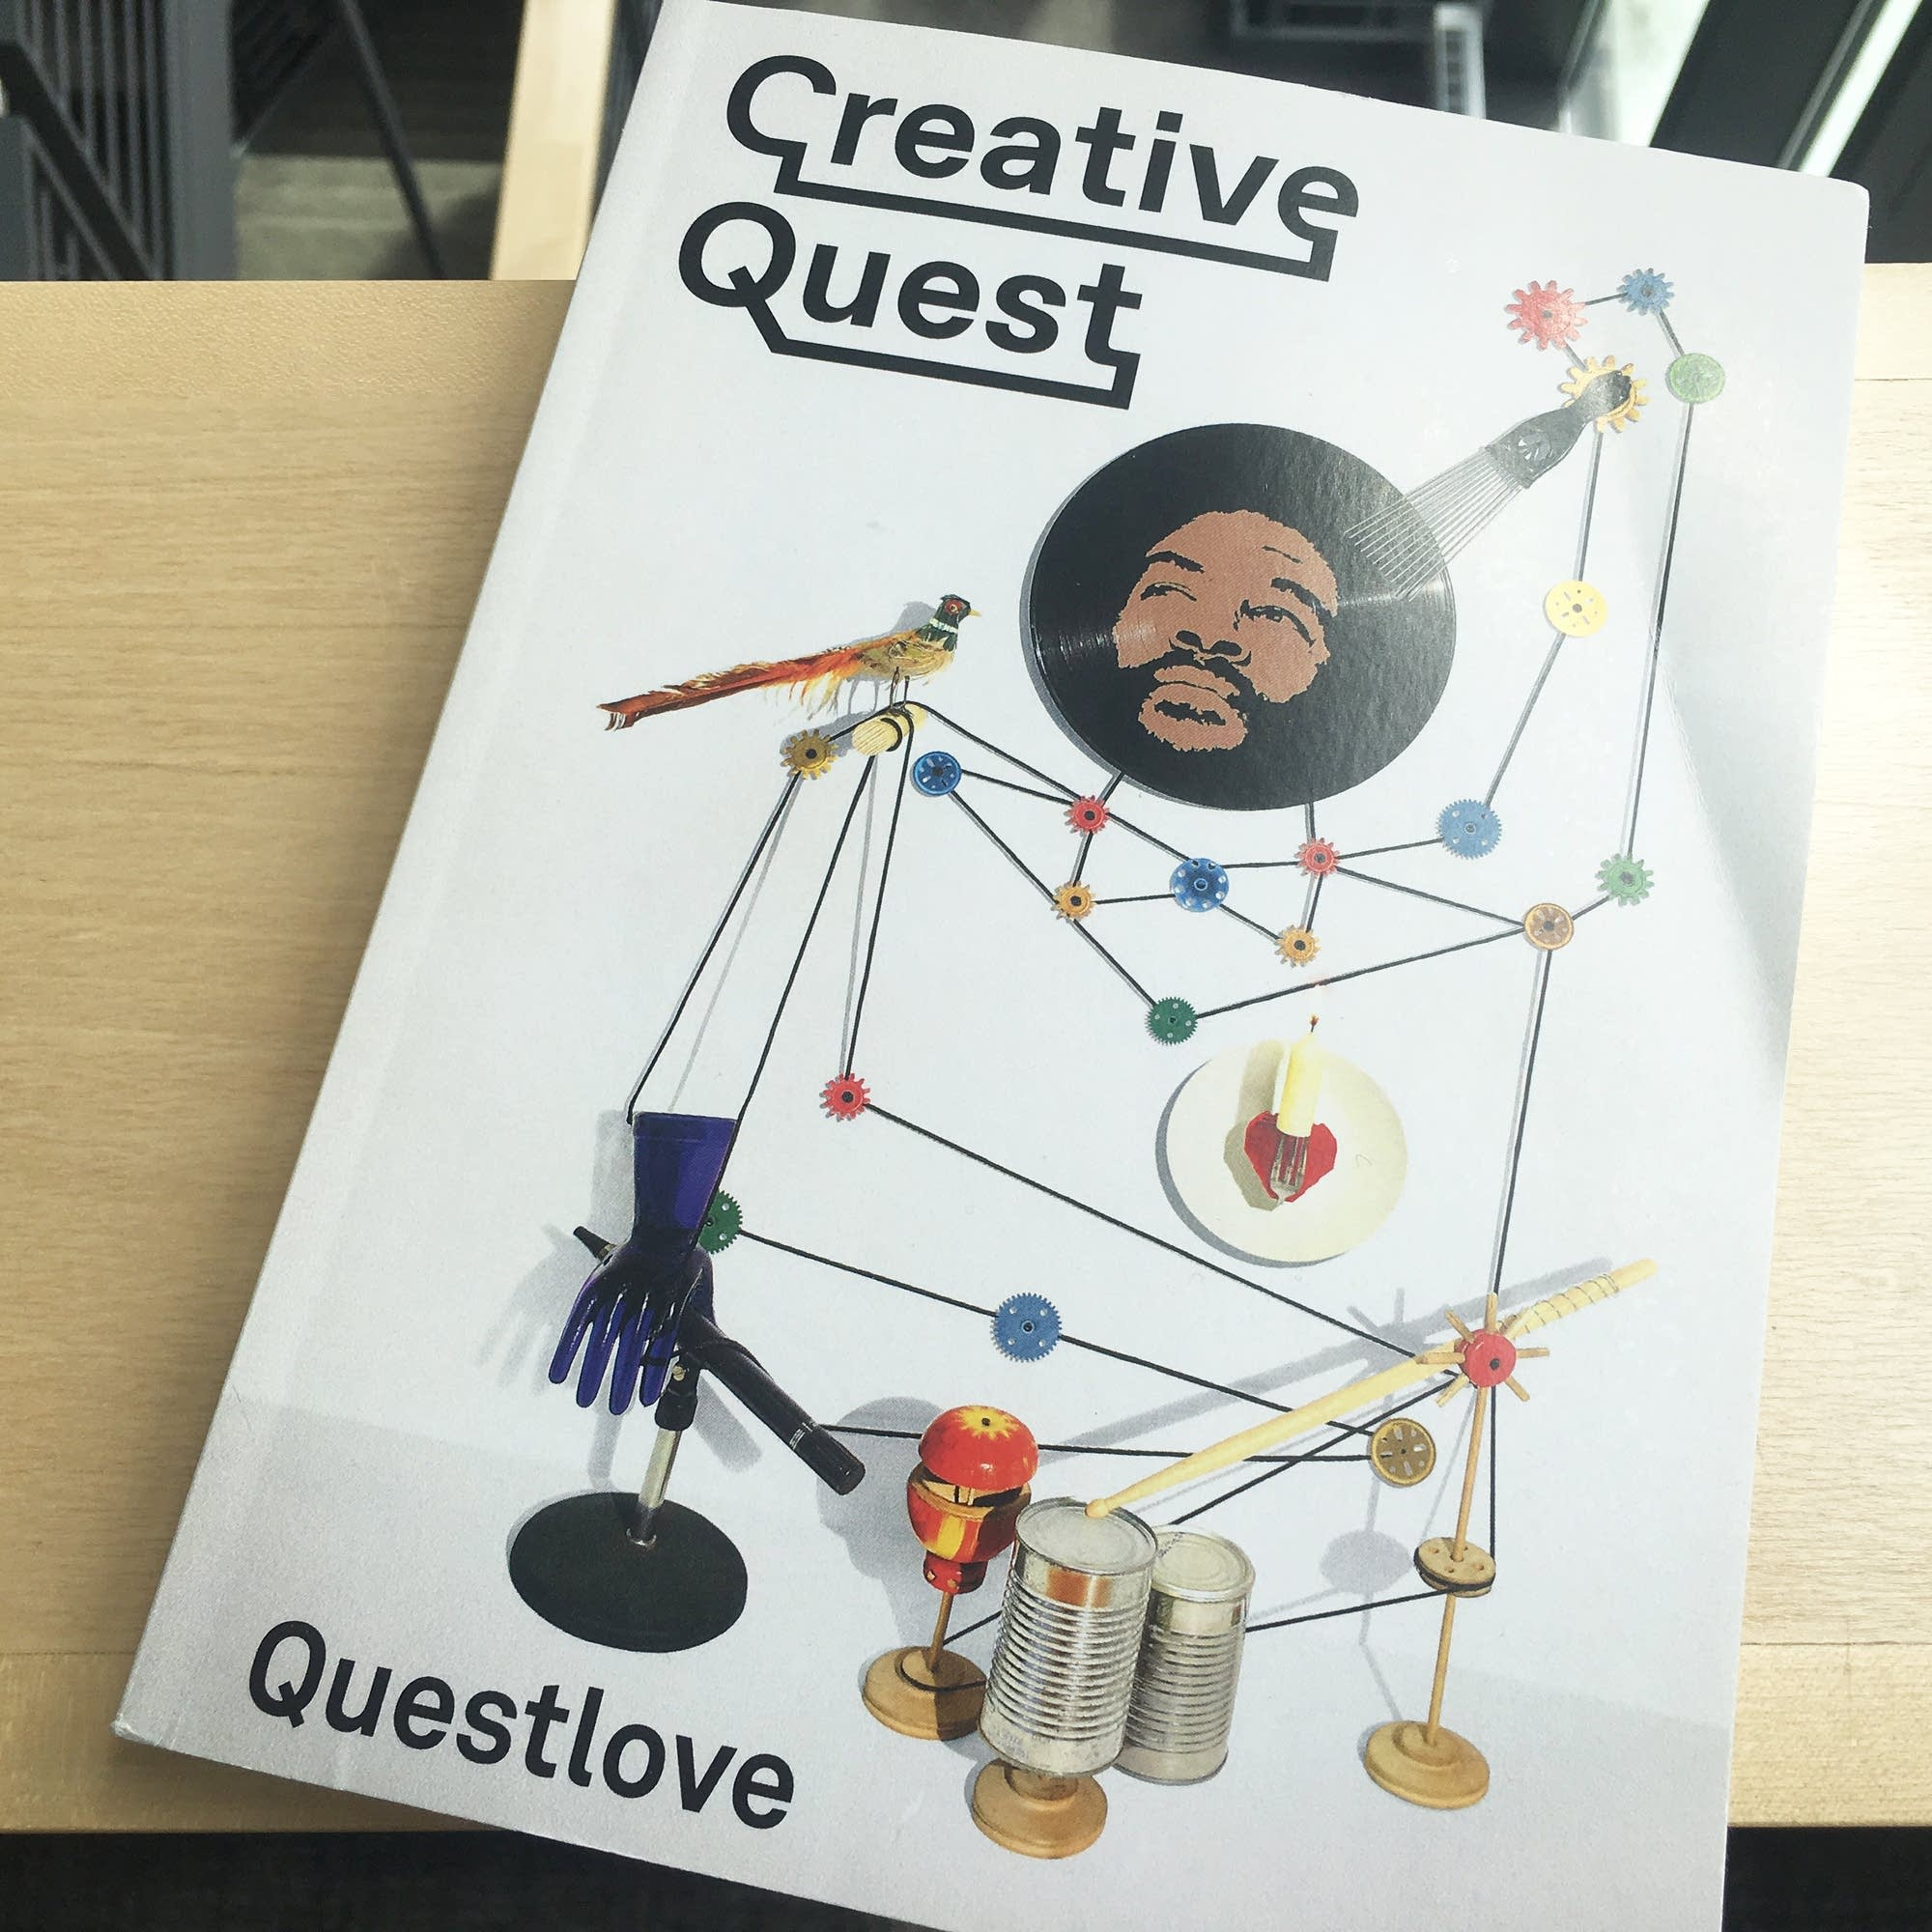 Questlove's book 'Creative Quest.'